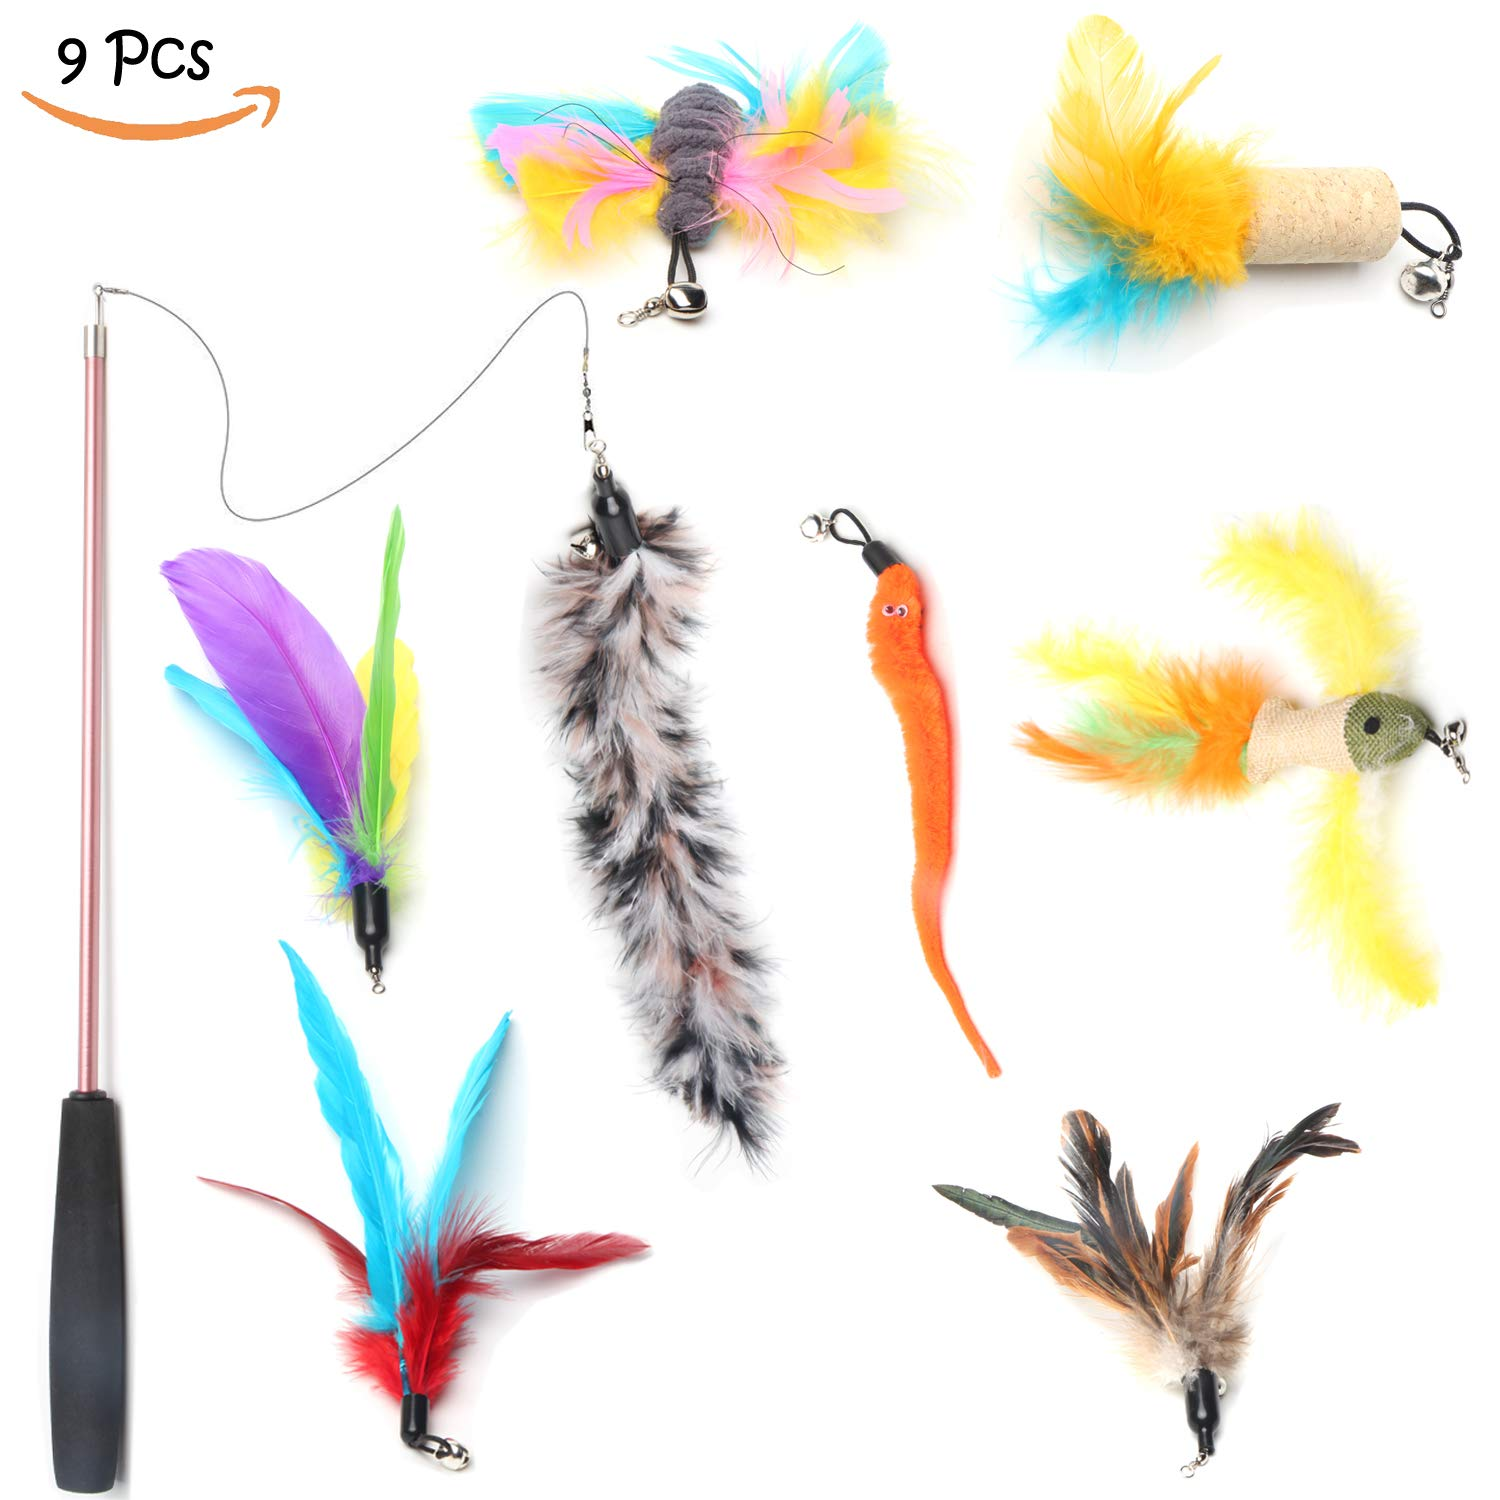 Cat Toys Kitten Toys Assortments Cat Feather Teaser -Wand Interactive Feather Toy Fluffy Mouse, Crinkle Balls for Cat, Puppy, Kitty, Kitten